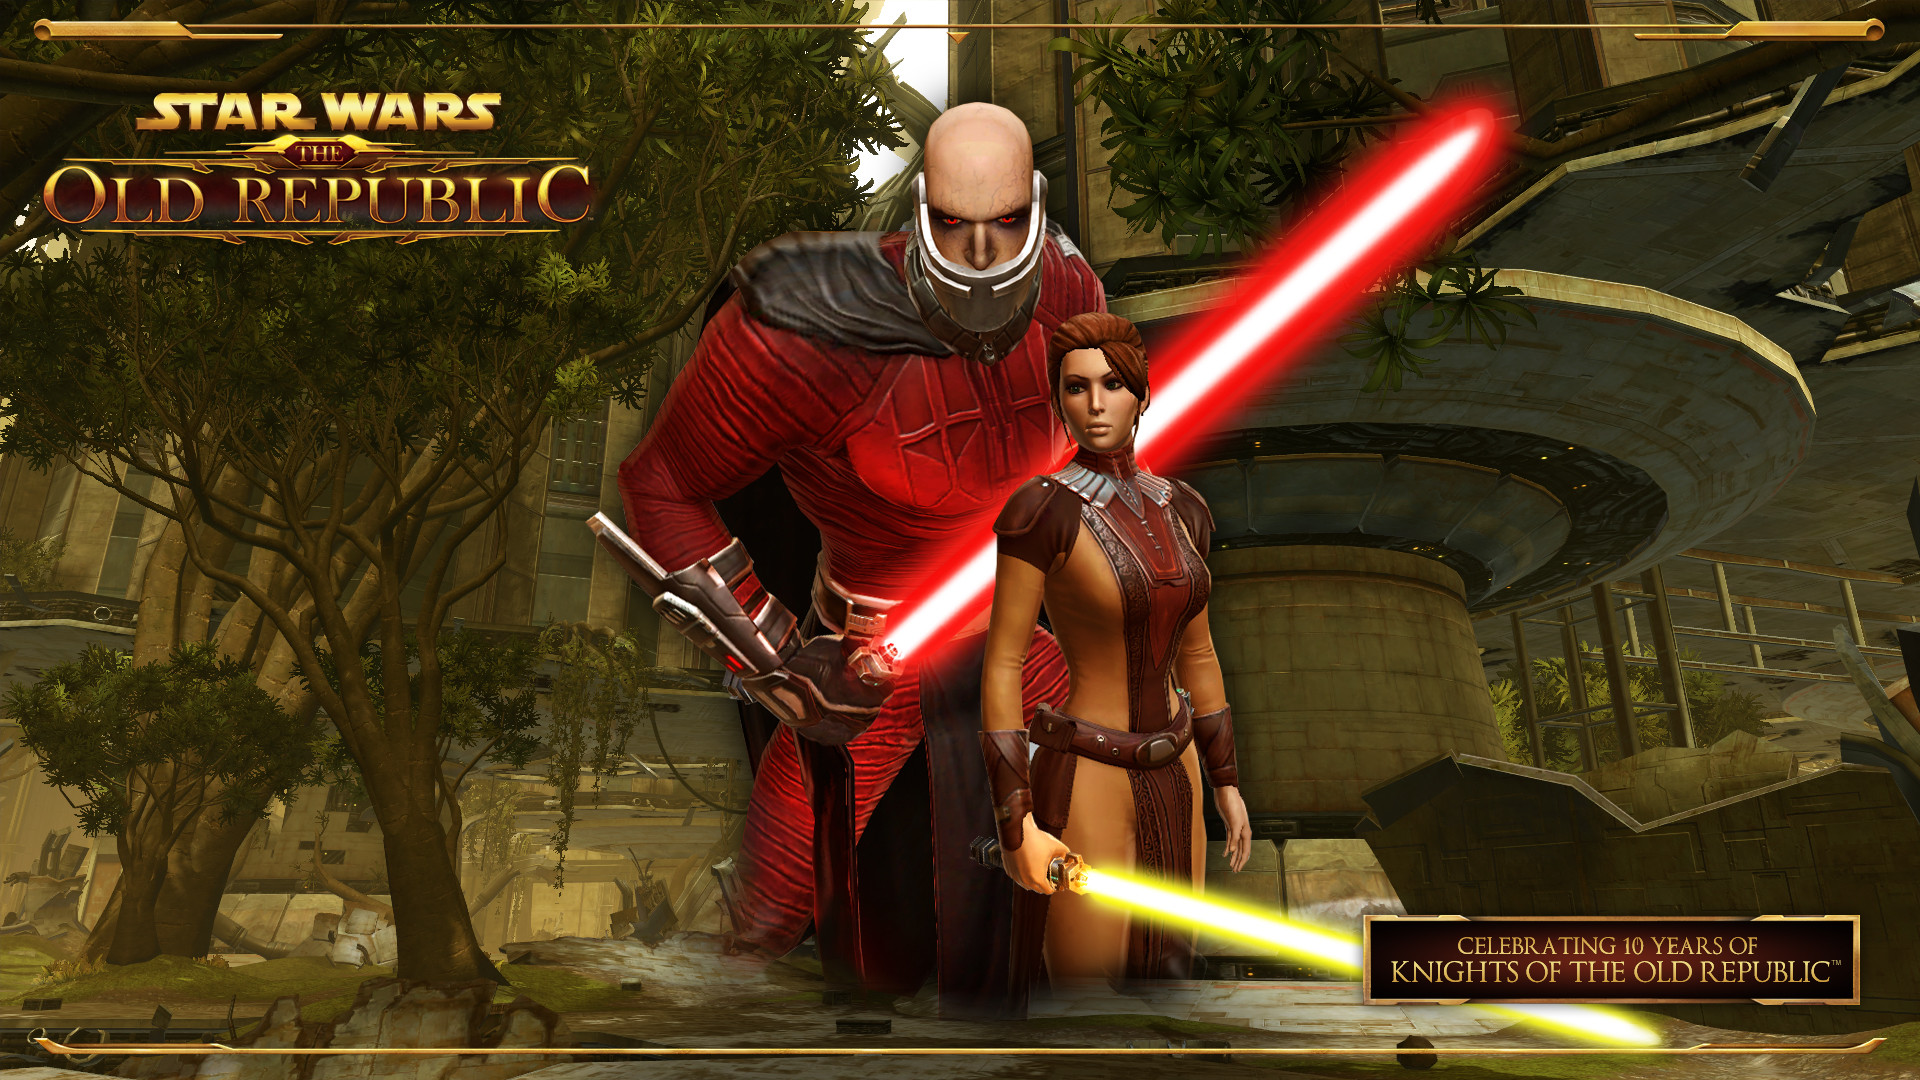 Kotor 2 Wallpapers (62+ images)